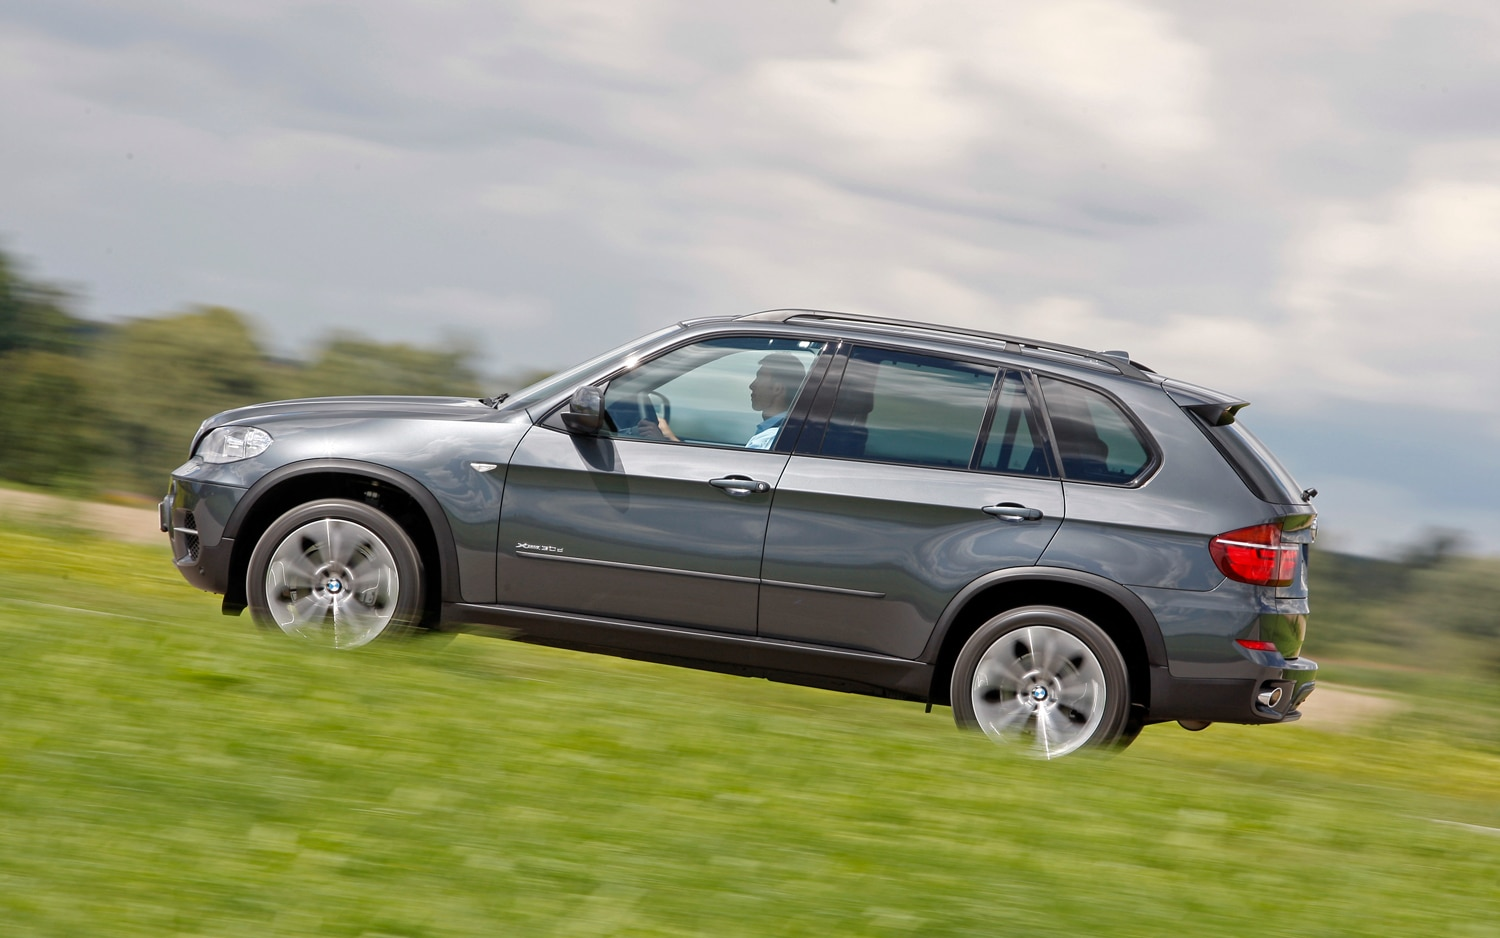 2012 Bmw X5 Xdrive35i Premium Editors Notebook